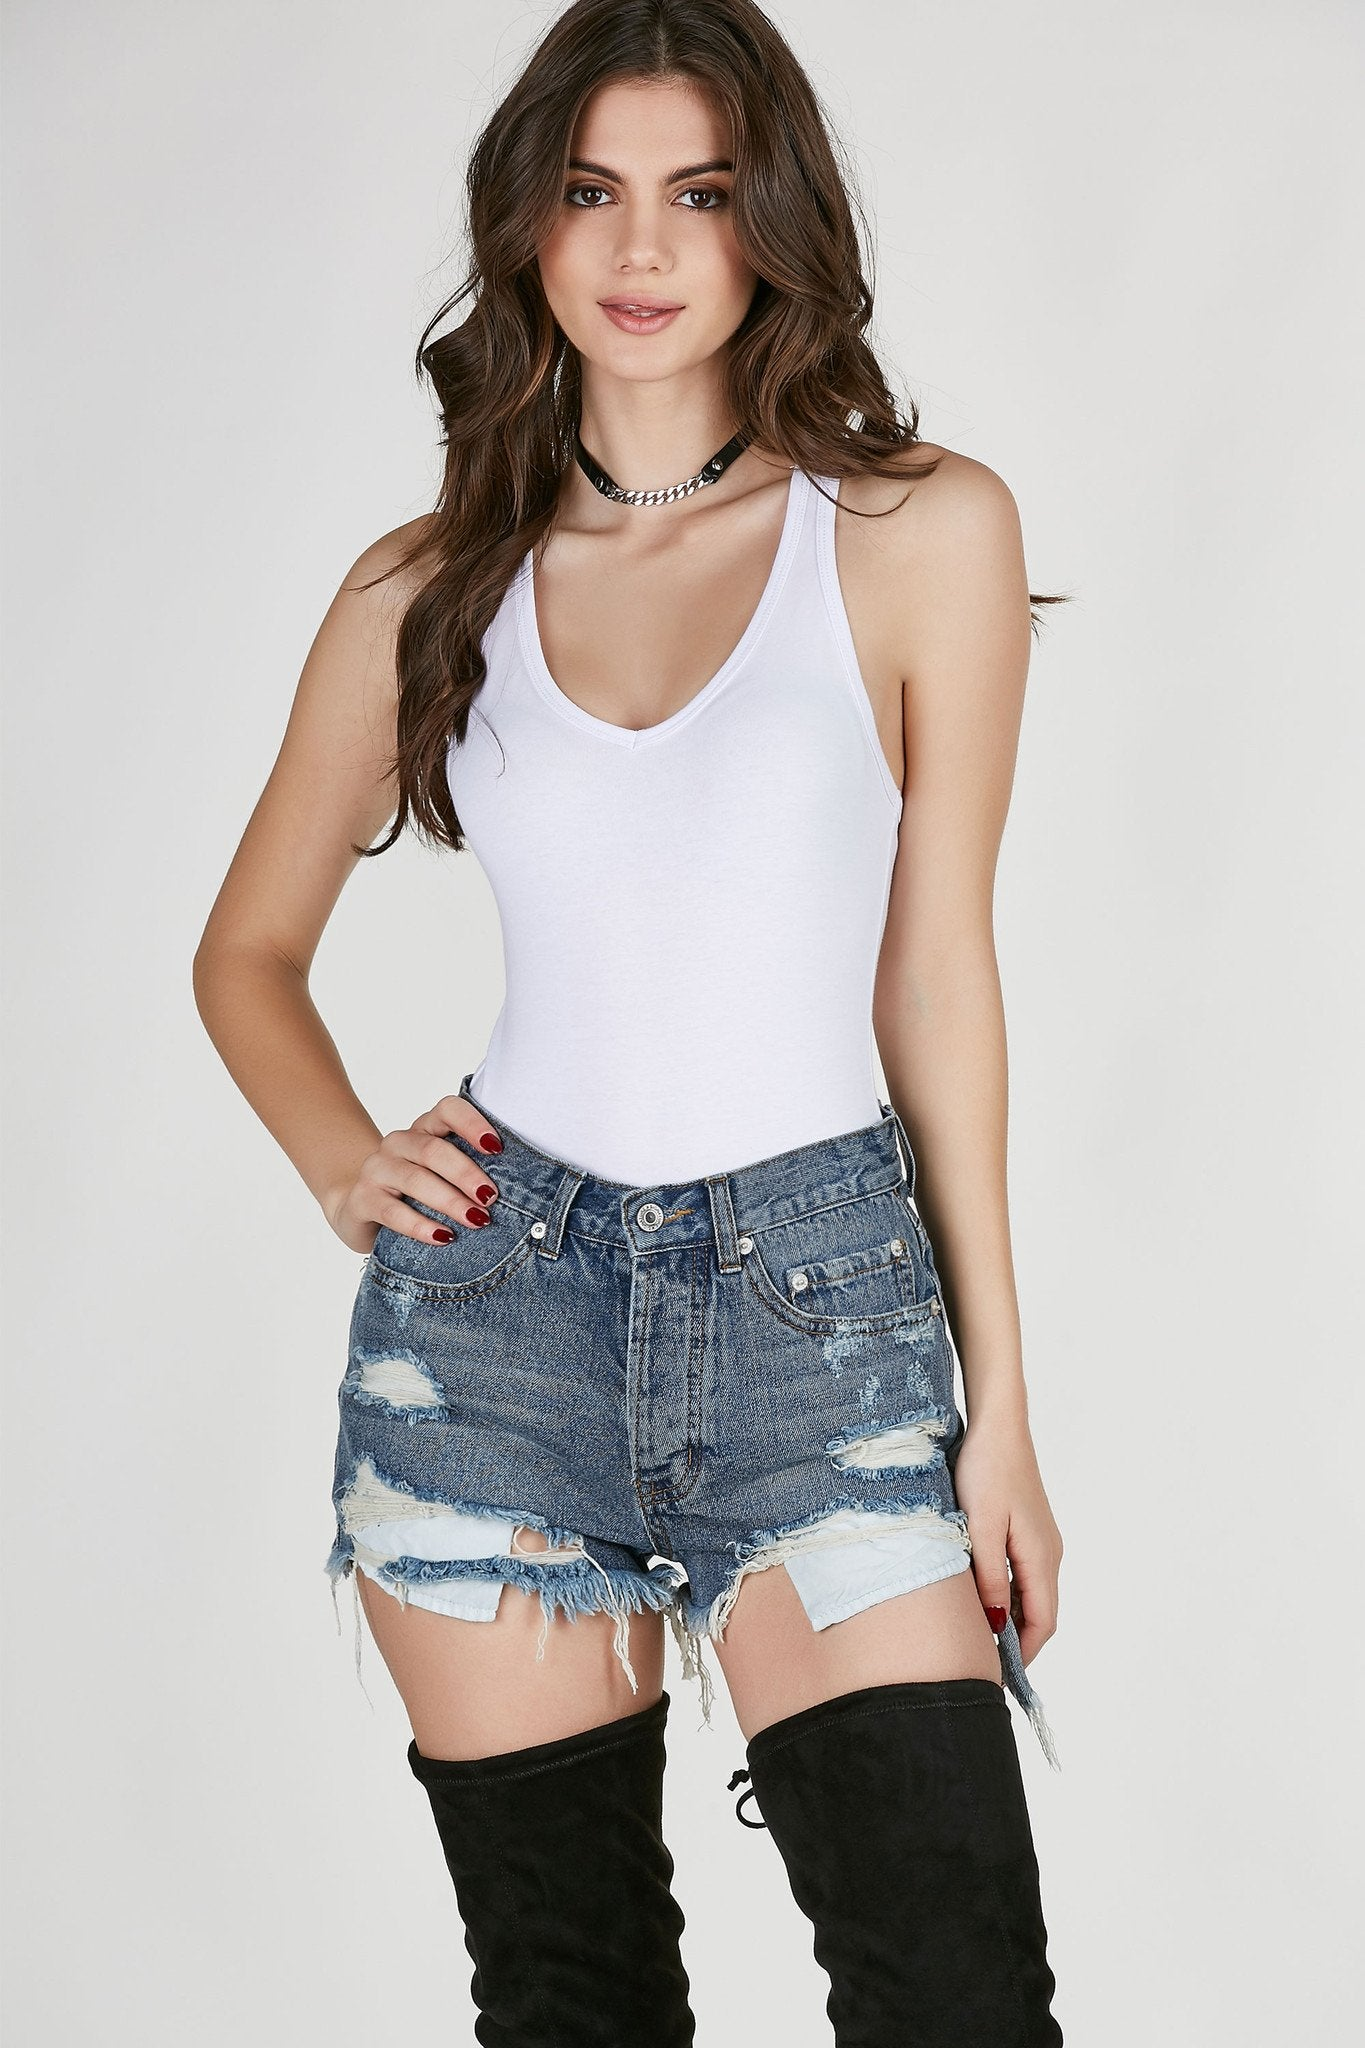 V-neck sleeveless bodysuit with racerback finish. Stretchy material with snap button closure at bottom.